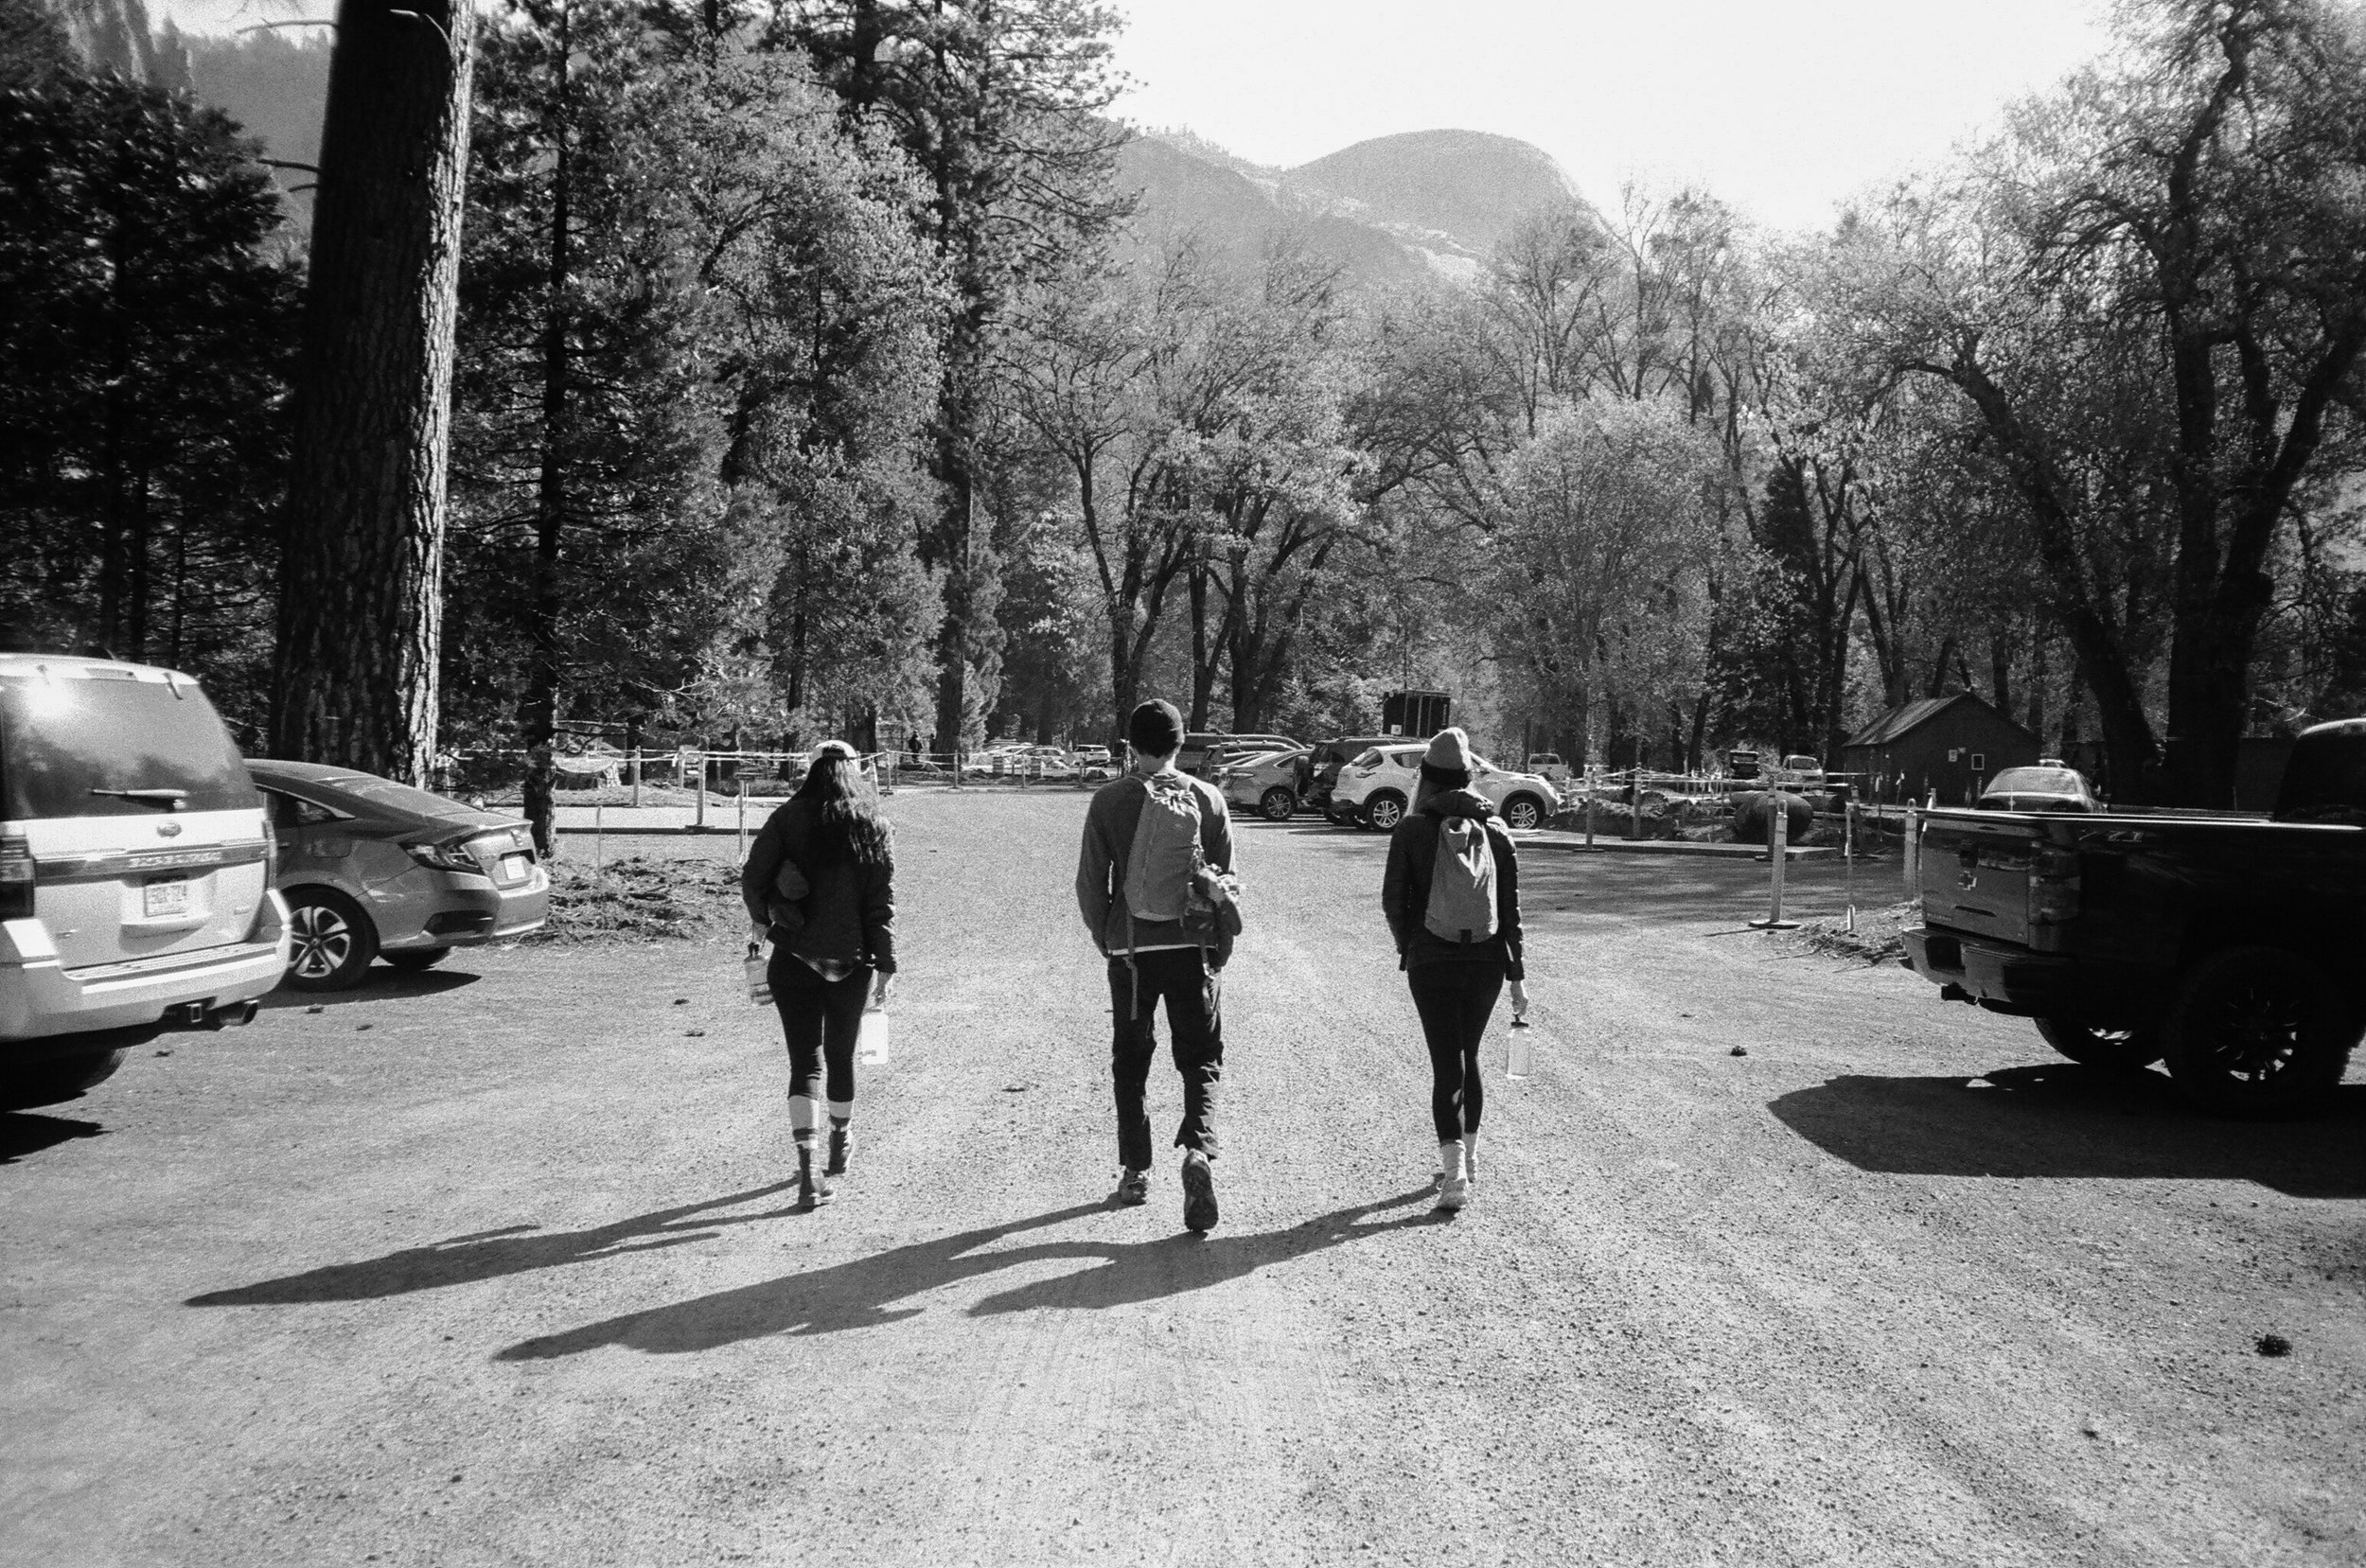 hiking trails in yosemite national park